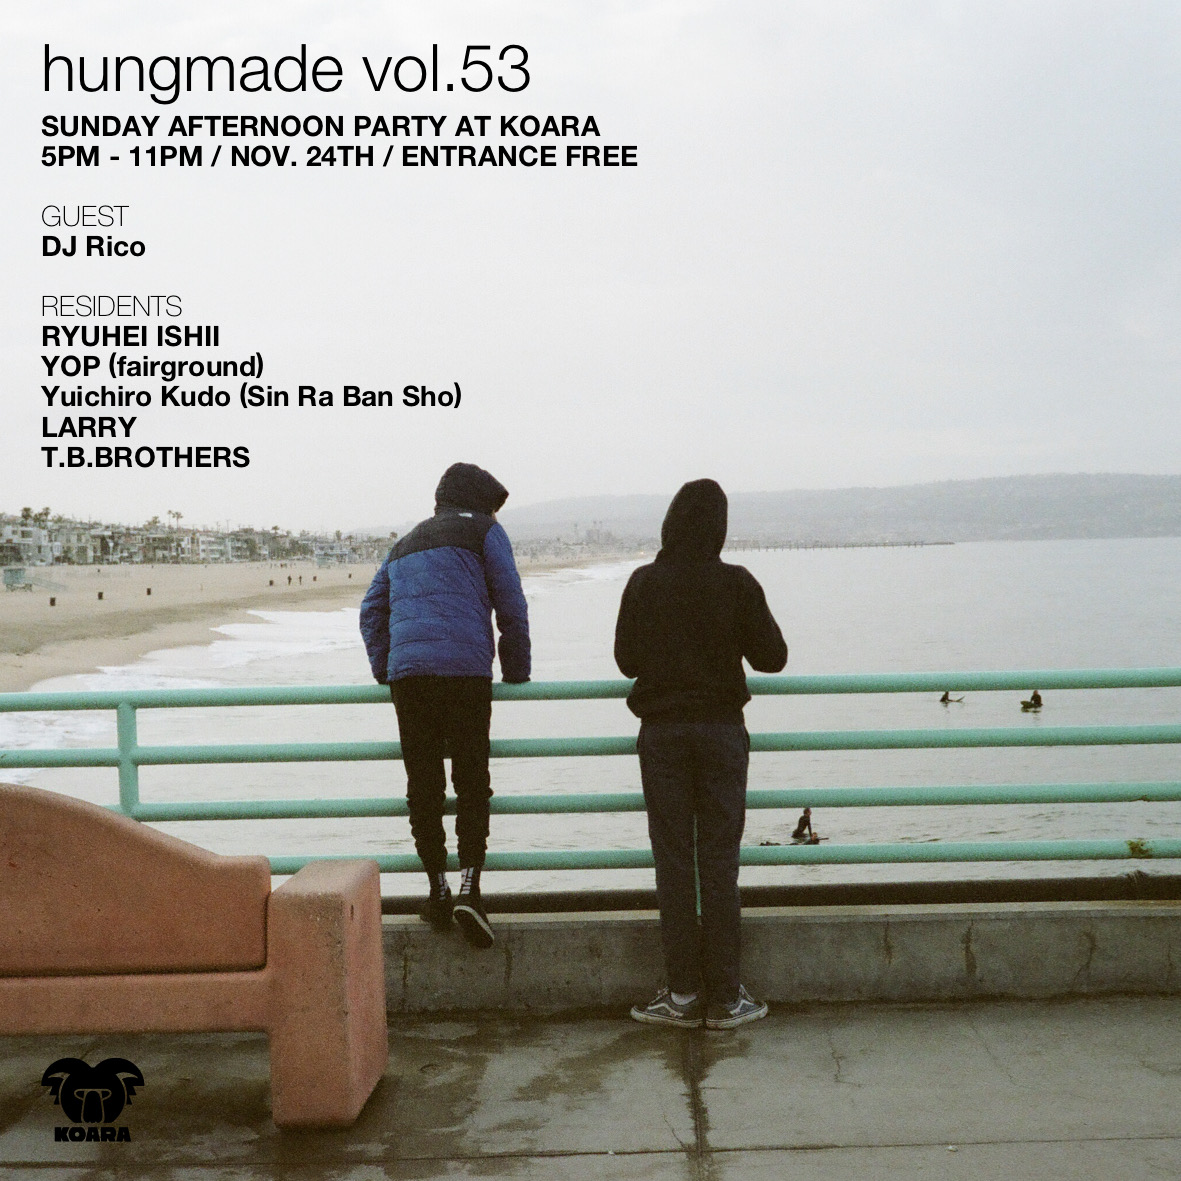 hungmade vol.53